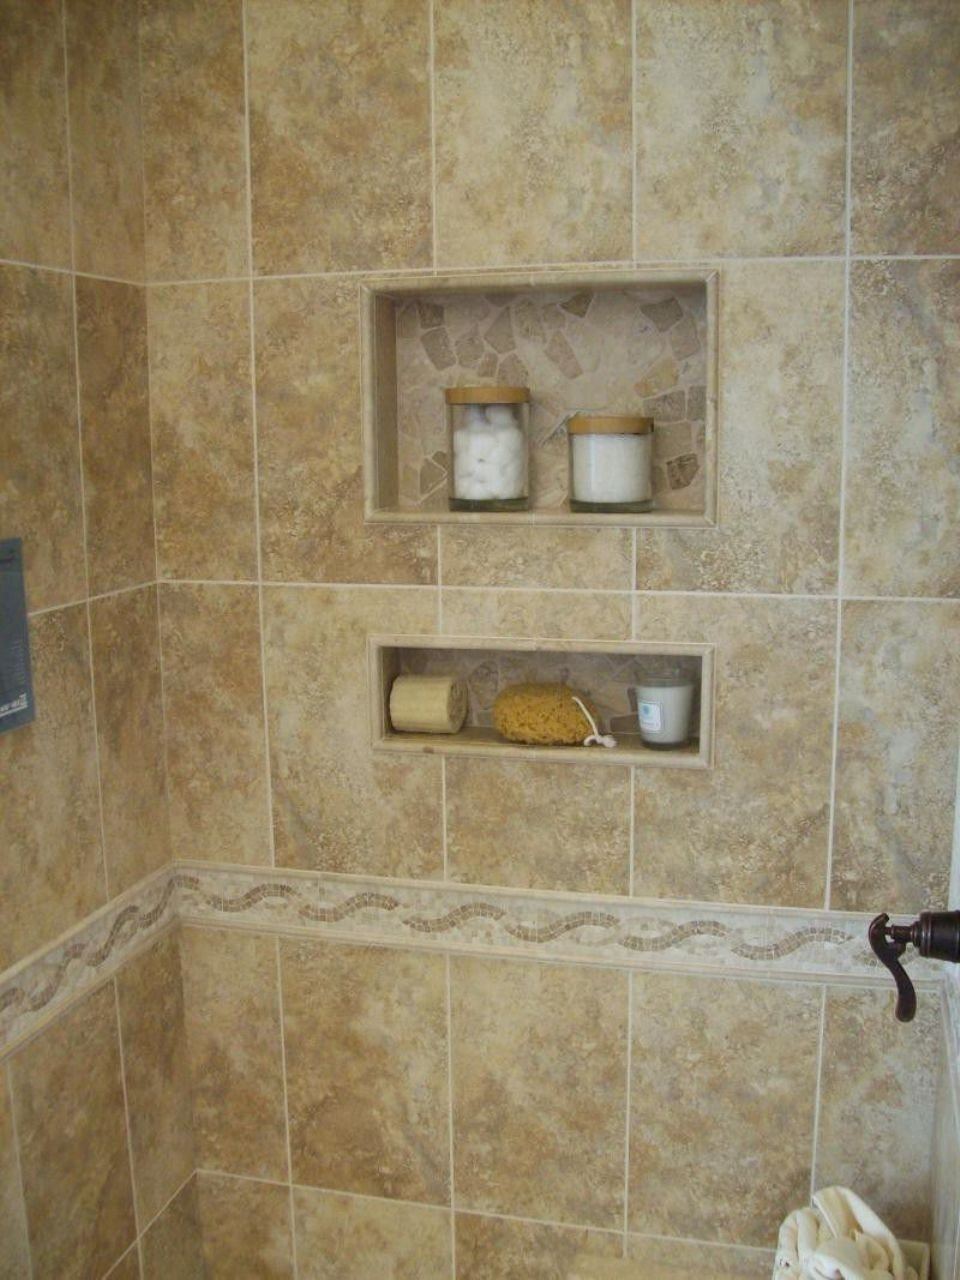 10 Great Small Bathroom Shower Tile Ideas shower tile ideas small bathrooms home improvement ideas 1 2020